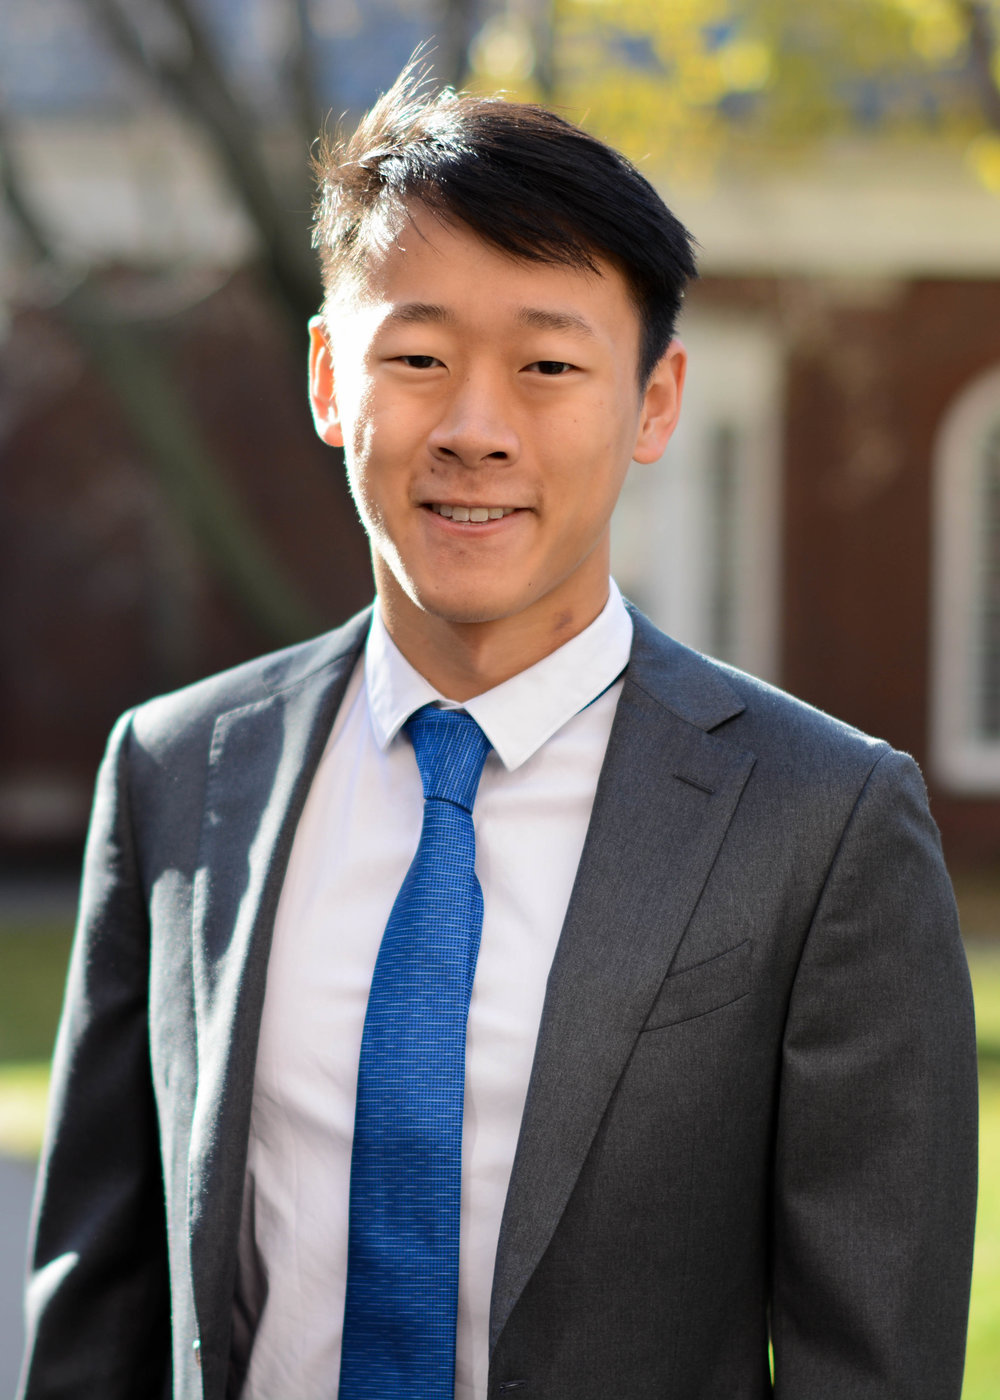 JOHN SHEN '19 | STORE OPERATIONS MANAGER - John is a sophomore in Winthrop House studying Computer Science, Statistics, and Russian. Hailing from Atlanta, he has a fondness for large international airports and warm weather. Outside of HSA, John teaches classes on the United States naturalization process. In his free time, he loves to explore new places, drink coffee, and go running along the river.